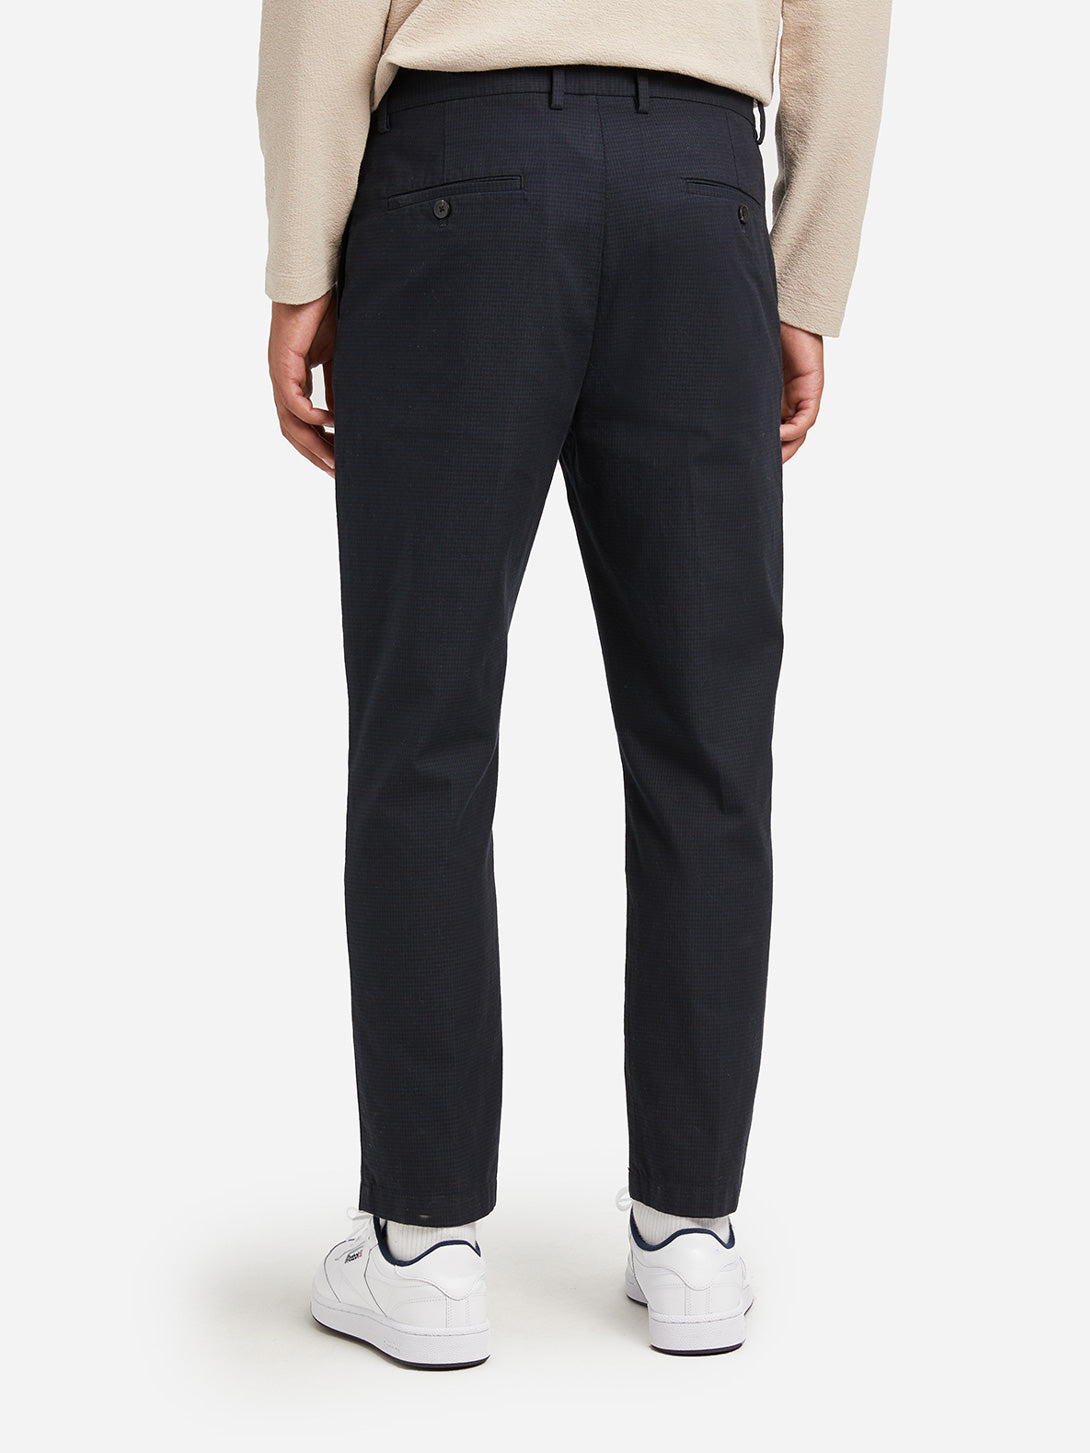 NAVY mens trousers niles trouser ons clothing